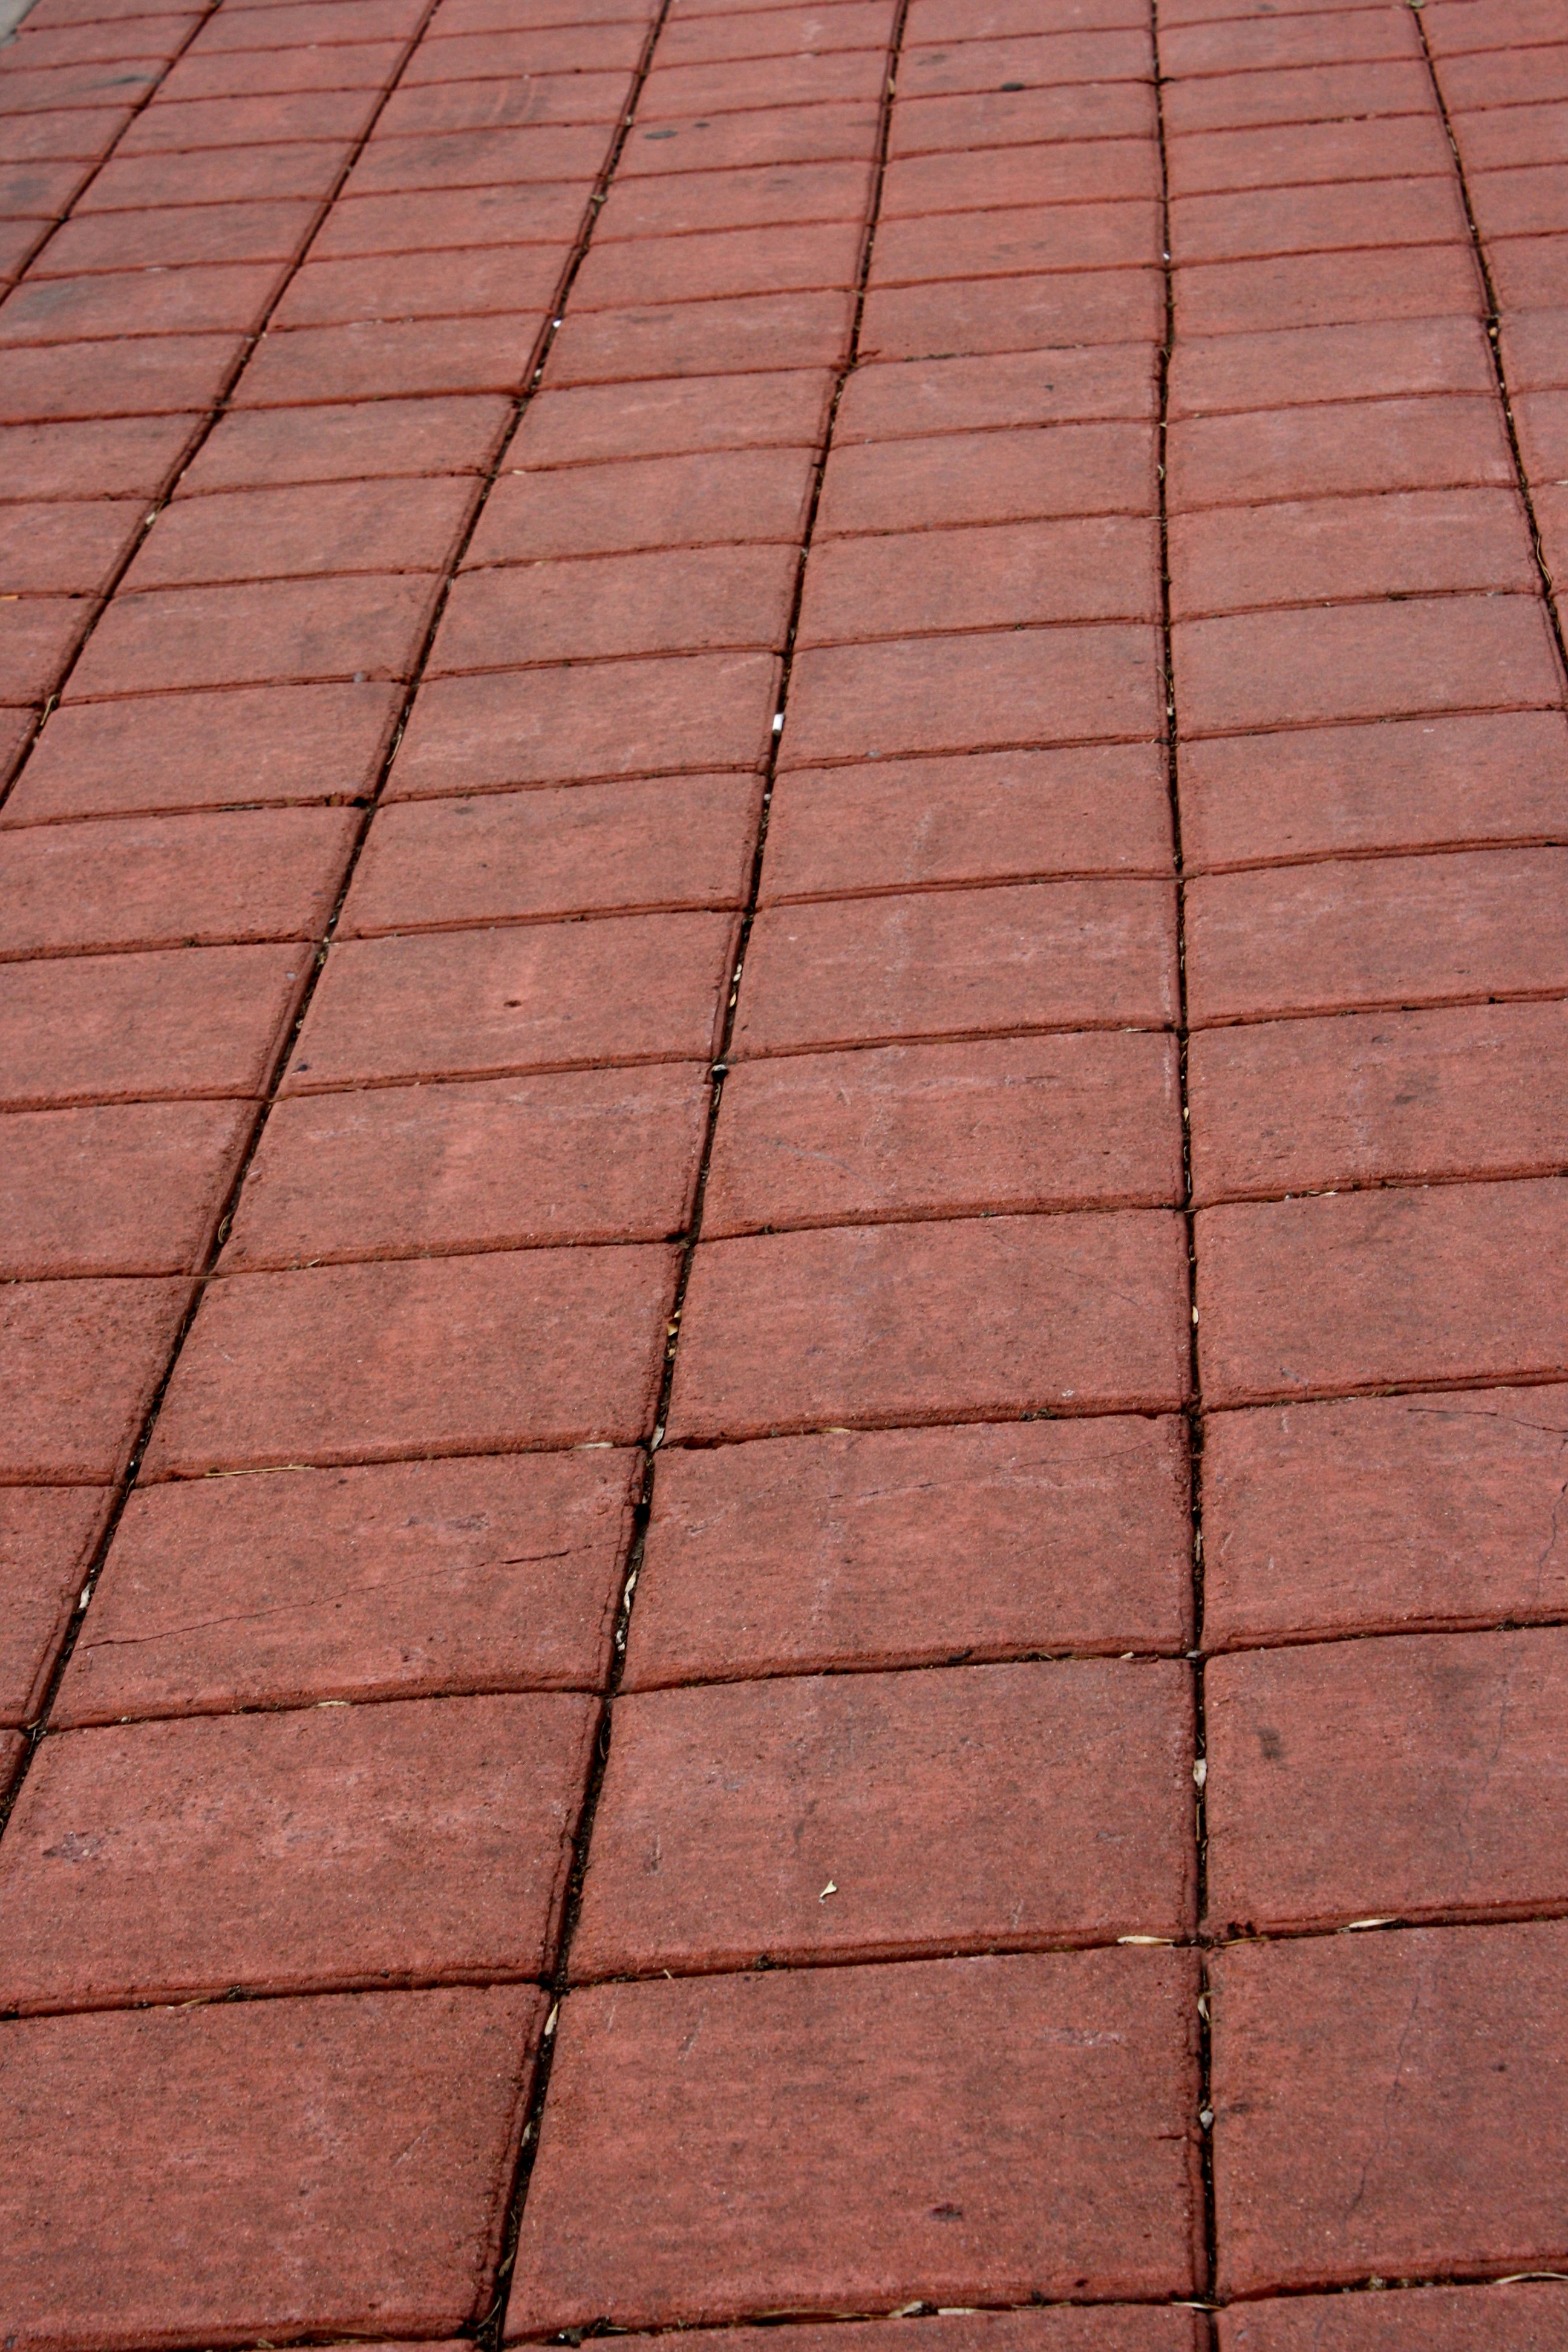 Red Pavers Sidewalk Picture.